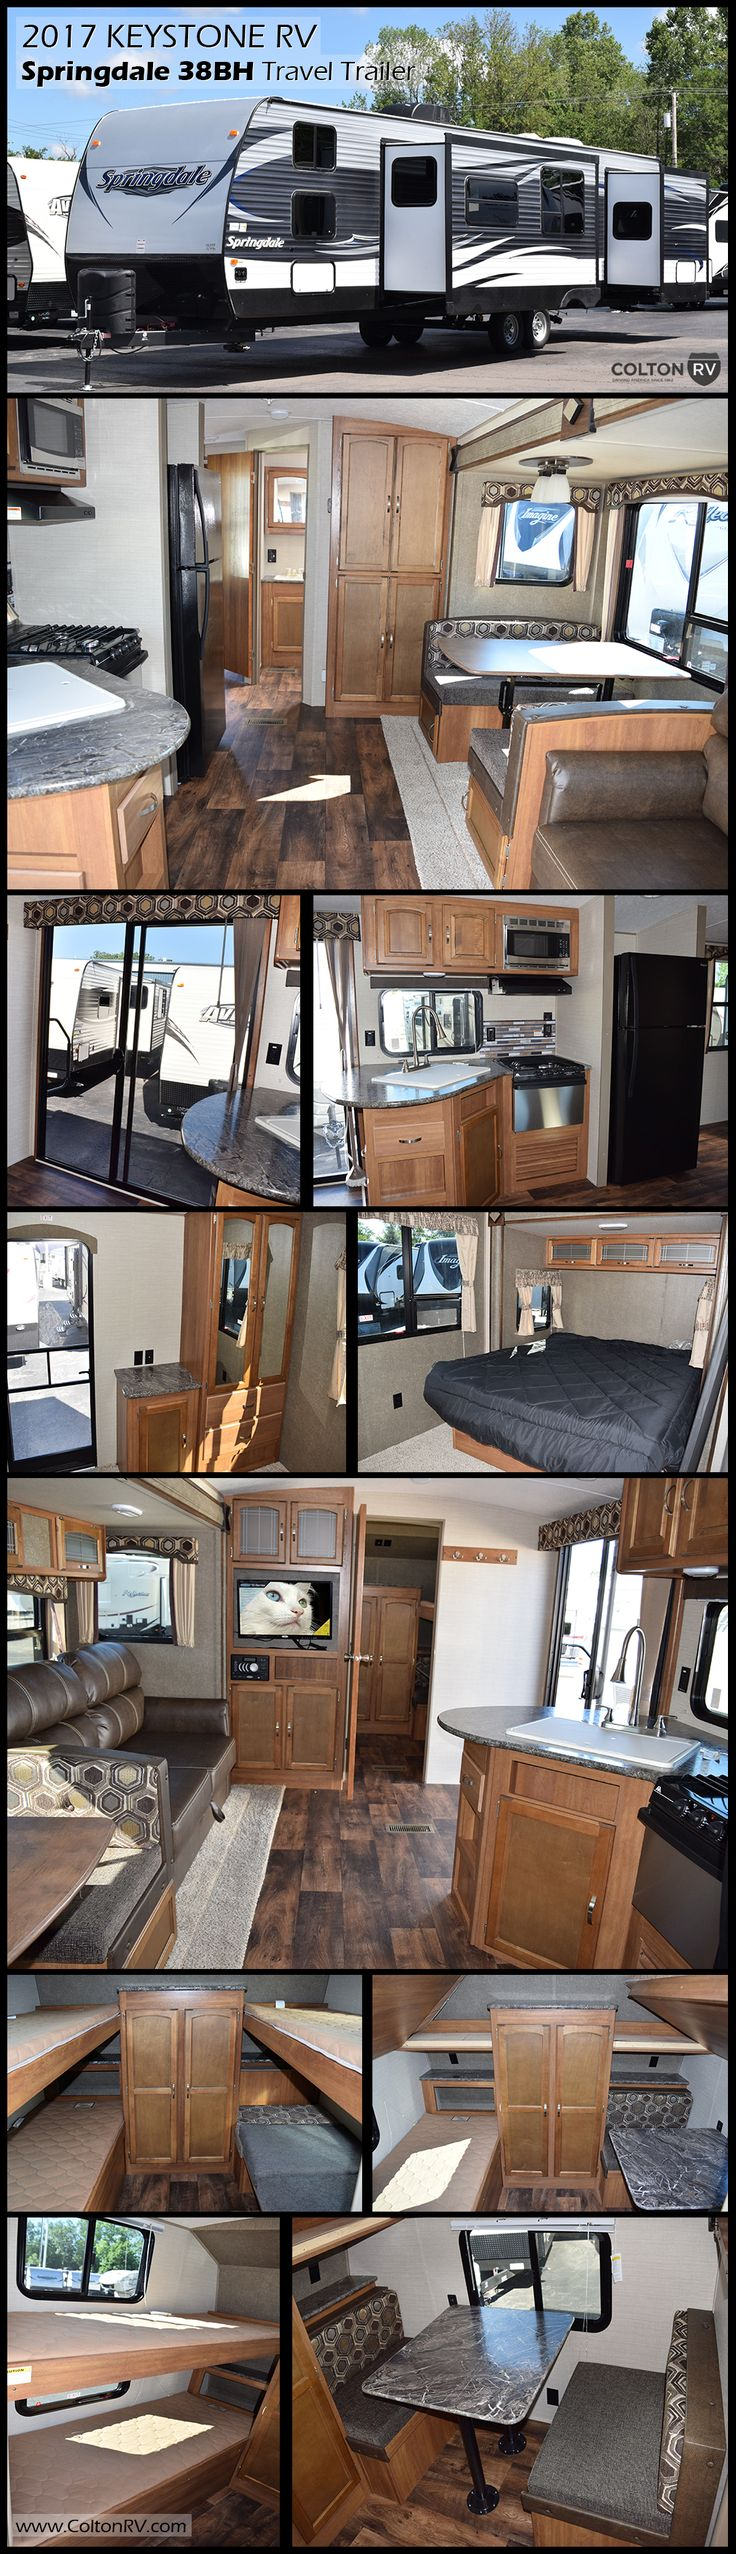 This spacious 2017 Keystone RV Springdale 38BH travel trailer offers a larger family many comforts of home with sleeping for nine, double slides for added space, glass patio doors and so much more! Kids will love the private bunkhouse up front featuring a kid's dinette which converts into a bunk. The rear of this trailer features a queen bed slide, wardrobe and private entry door.